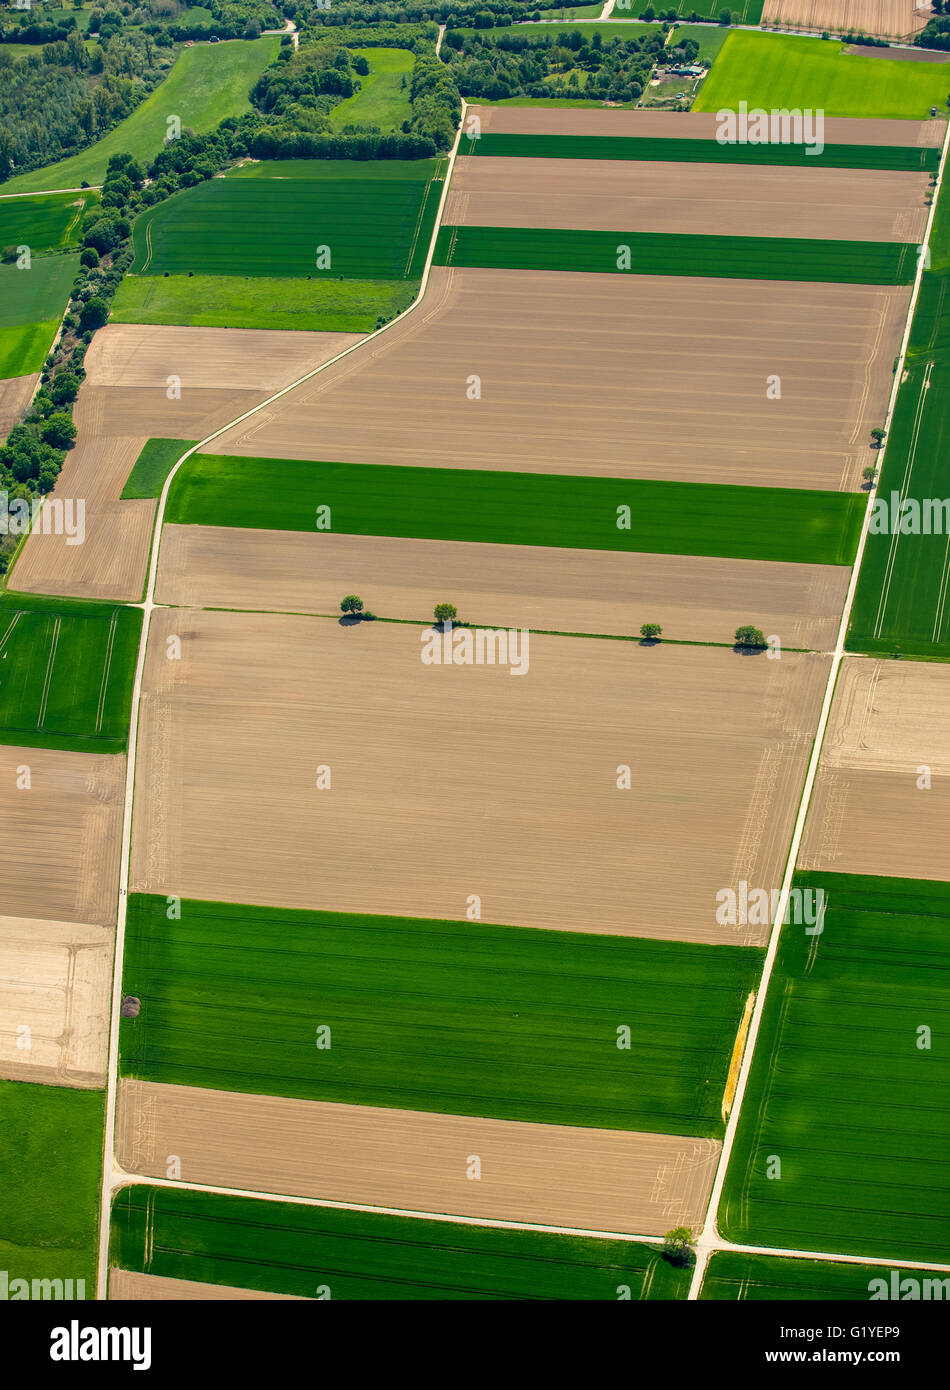 Aerial view, cornfields on the Lower Rhine, successes, crop rotation, corn fields in the spring, Grevenbroich, Lower - Stock Image